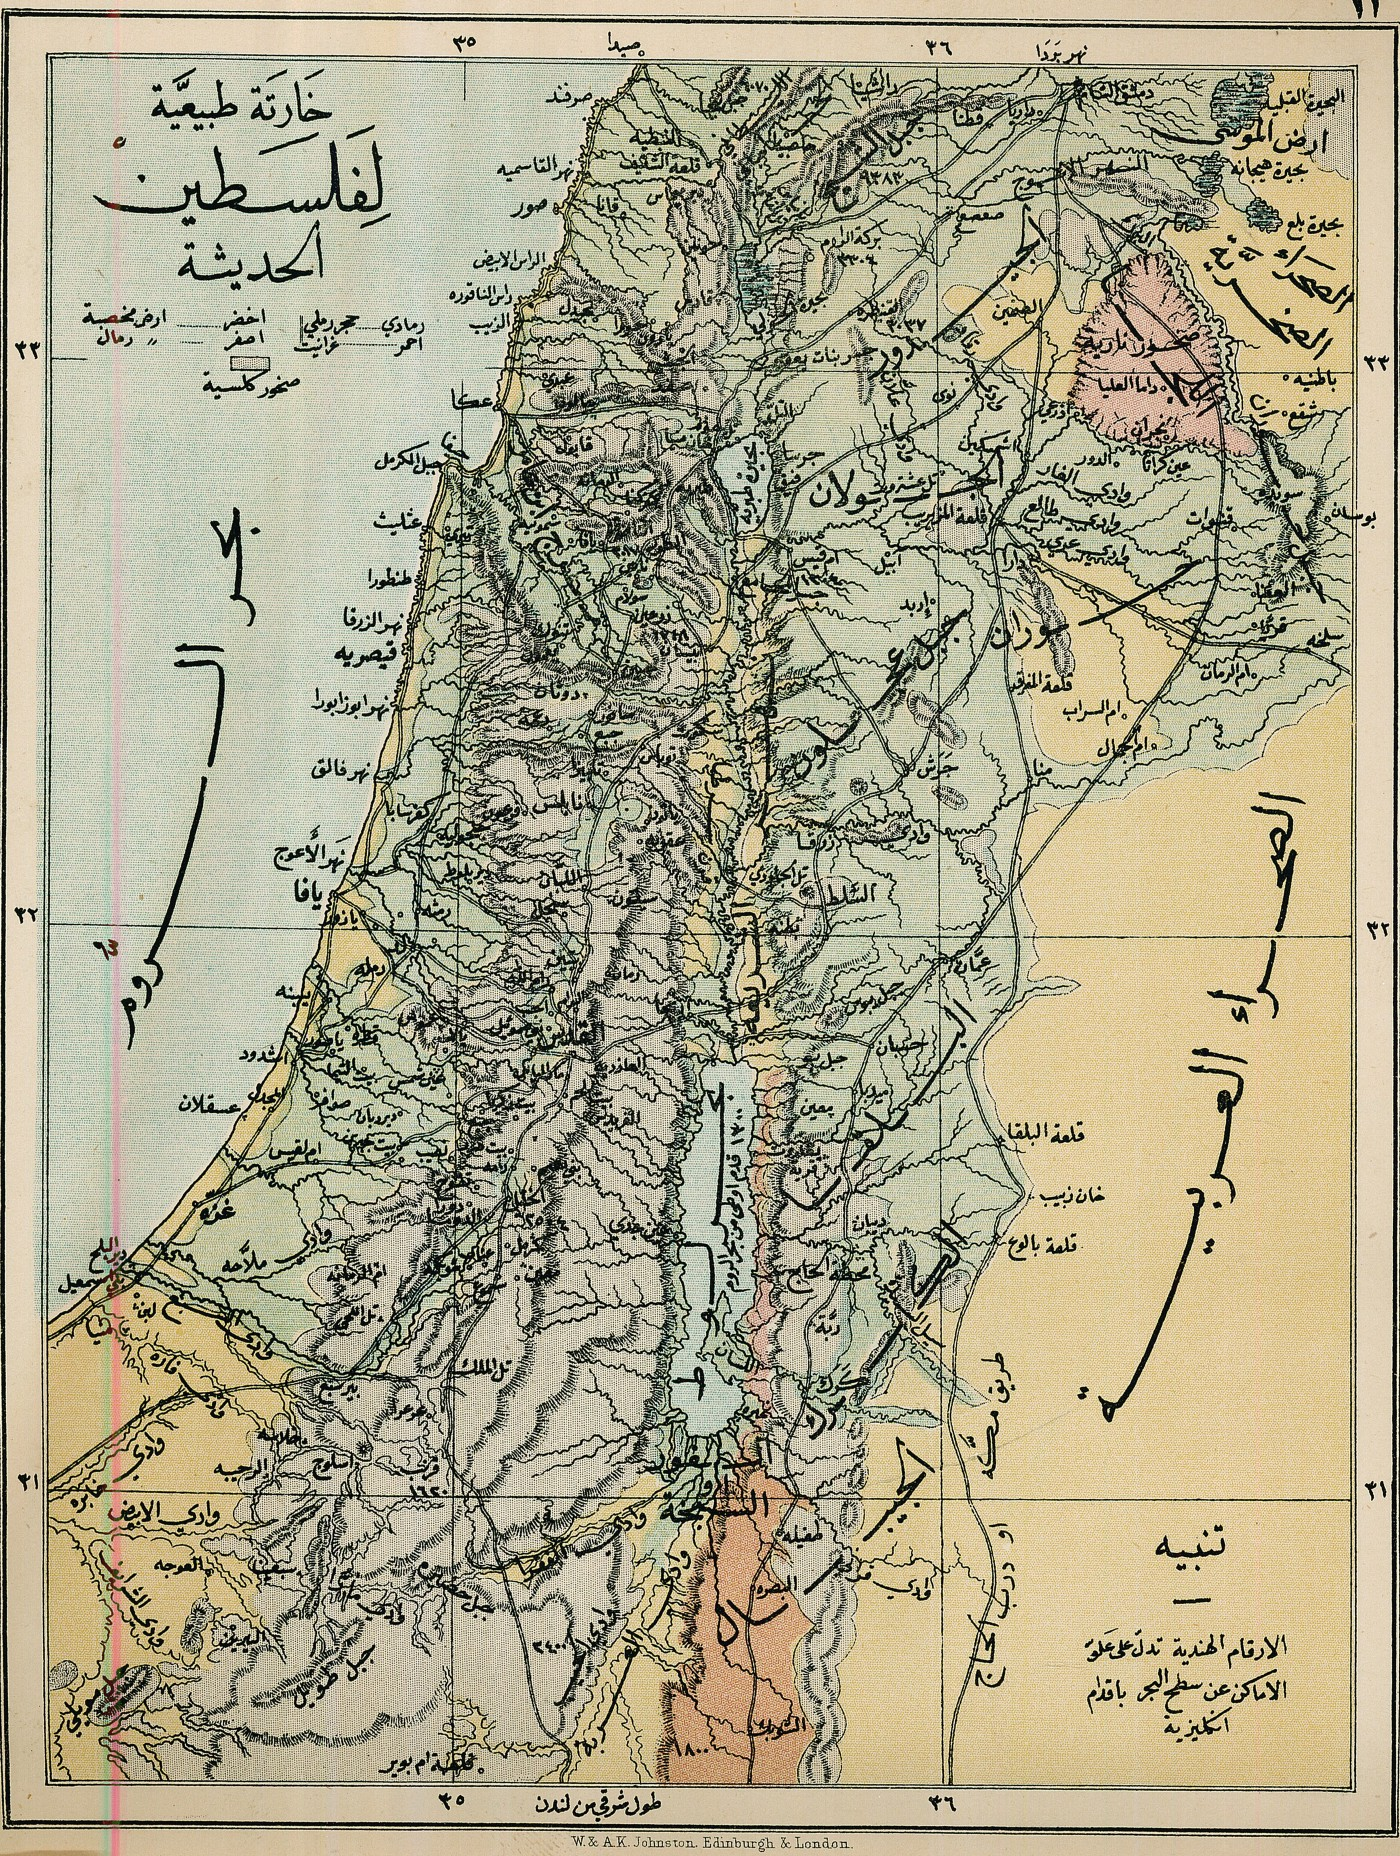 An early 20th Arabic map of Palestine